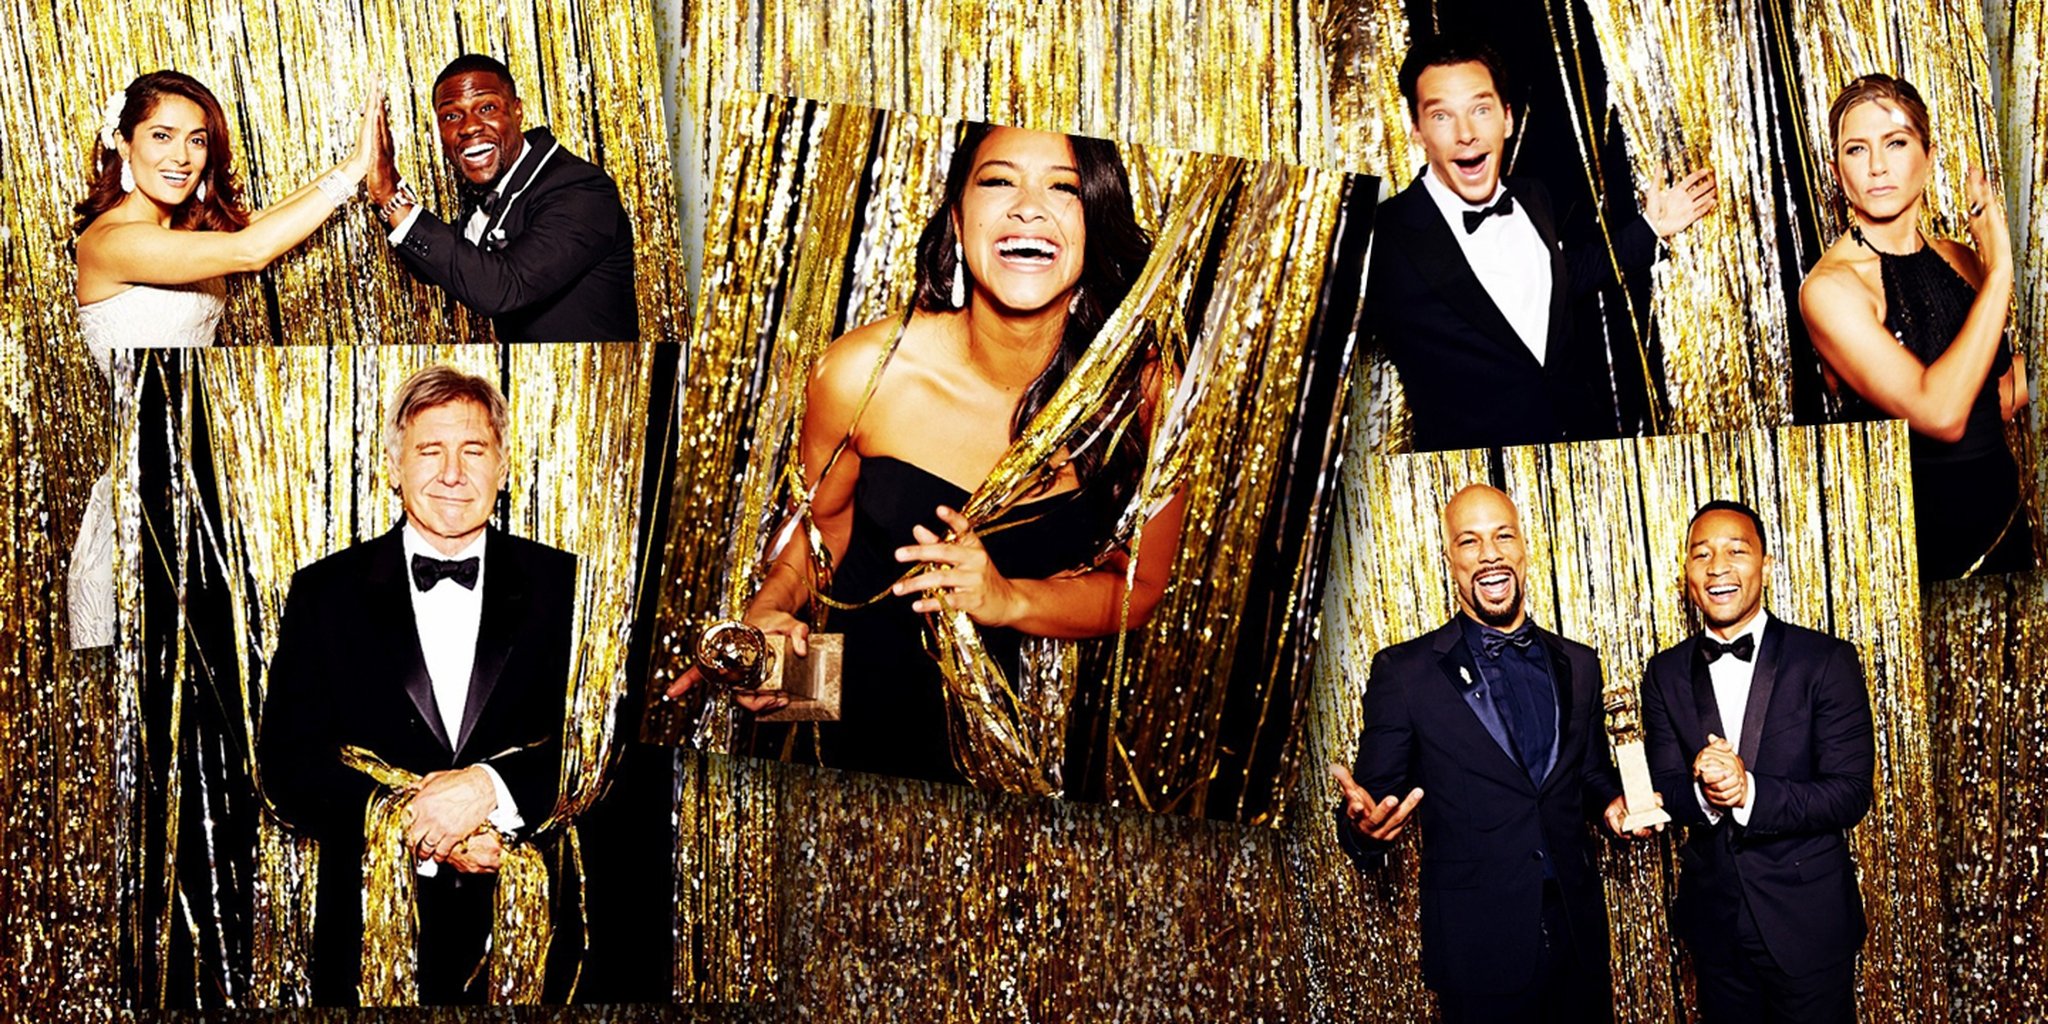 Golden Globes Photobooth Images